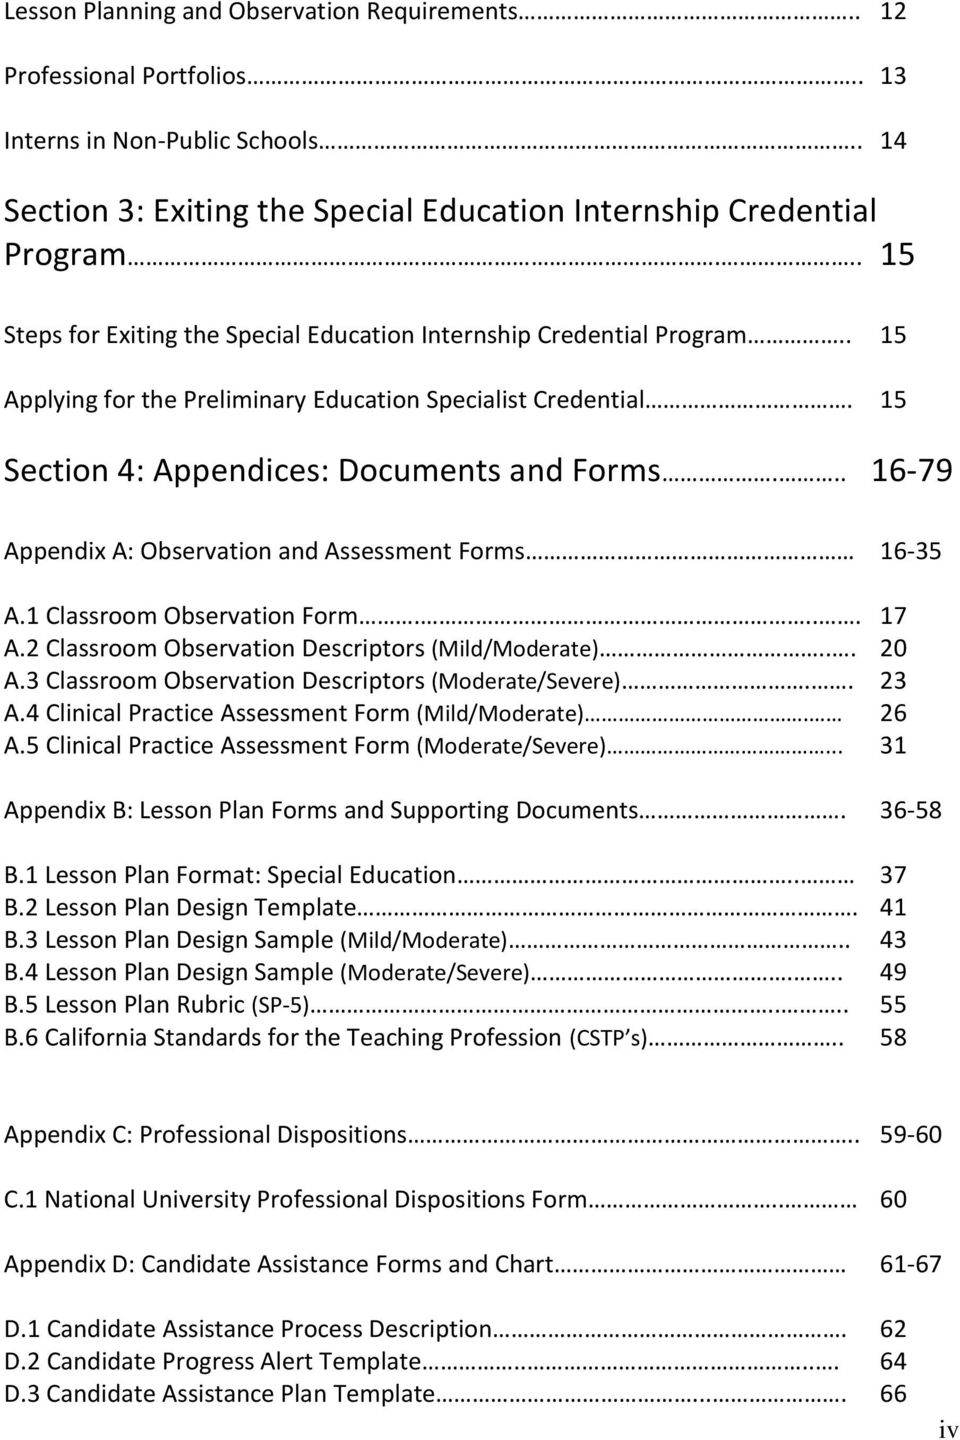 .. 16-79 Appendix A: Observation and Assessment Forms 16-35 A.1 Classroom Observation Form.... 17 A.2 Classroom Observation Descriptors (Mild/Moderate)... 20 A.